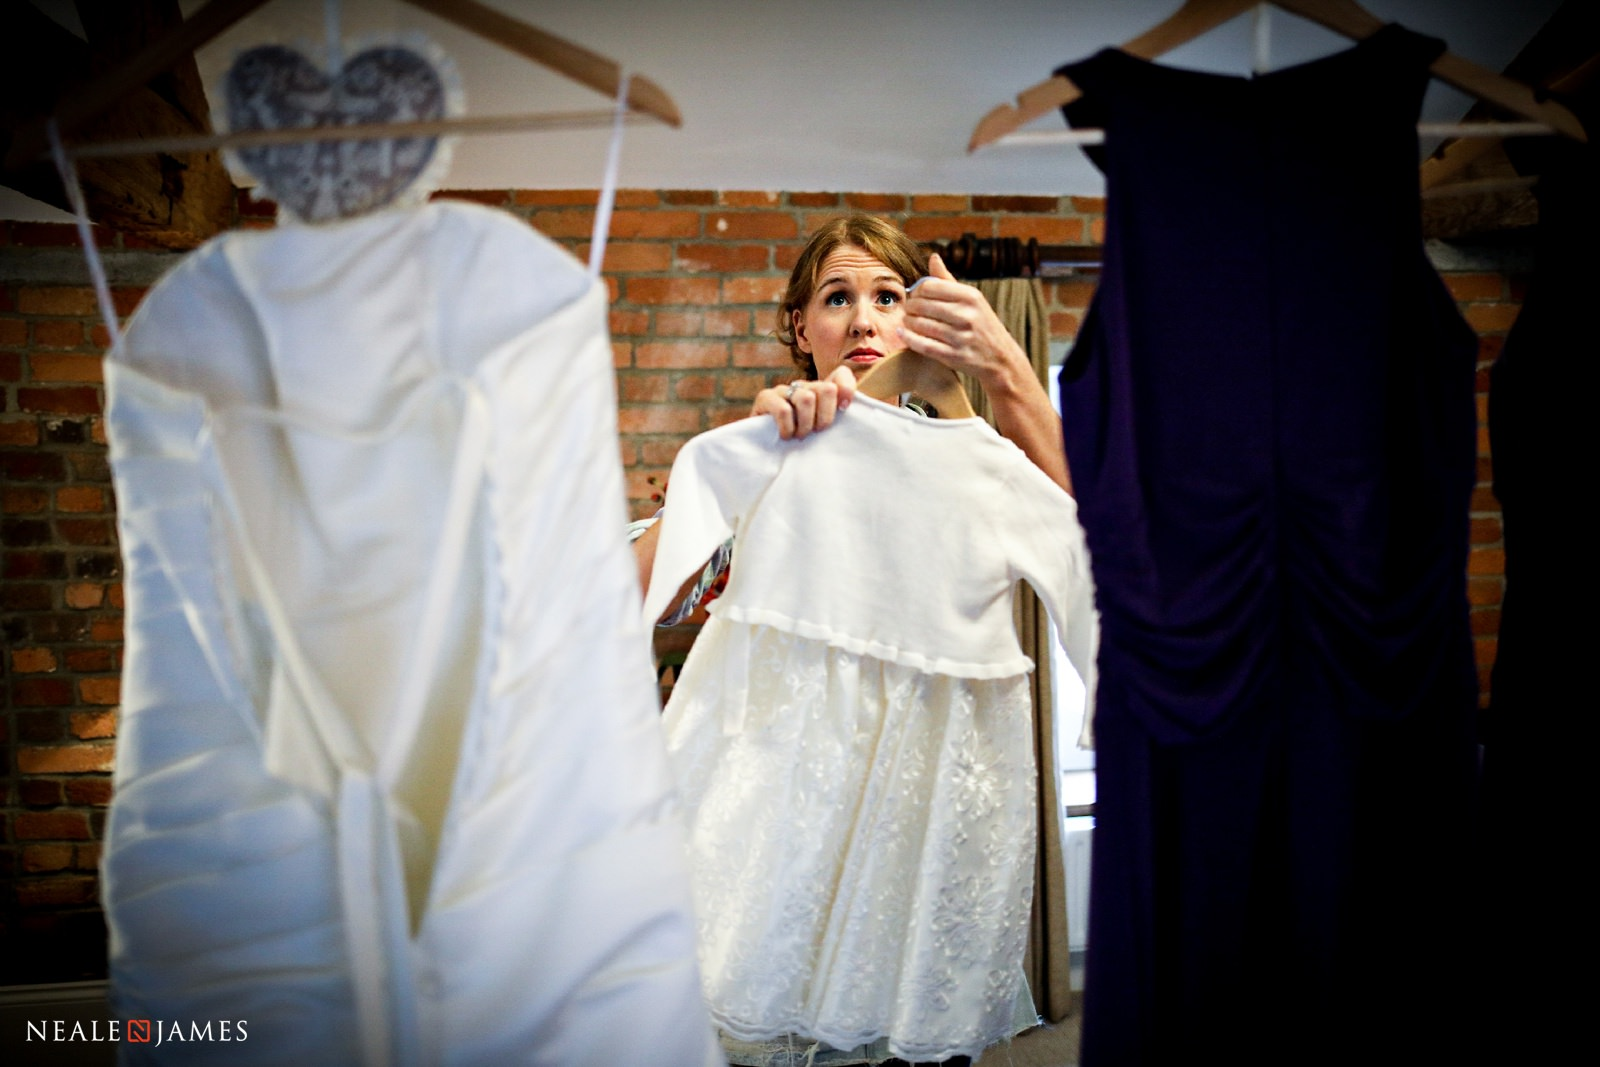 A bride hangs her dress up as she prepares for her winter wedding at Wasing Park